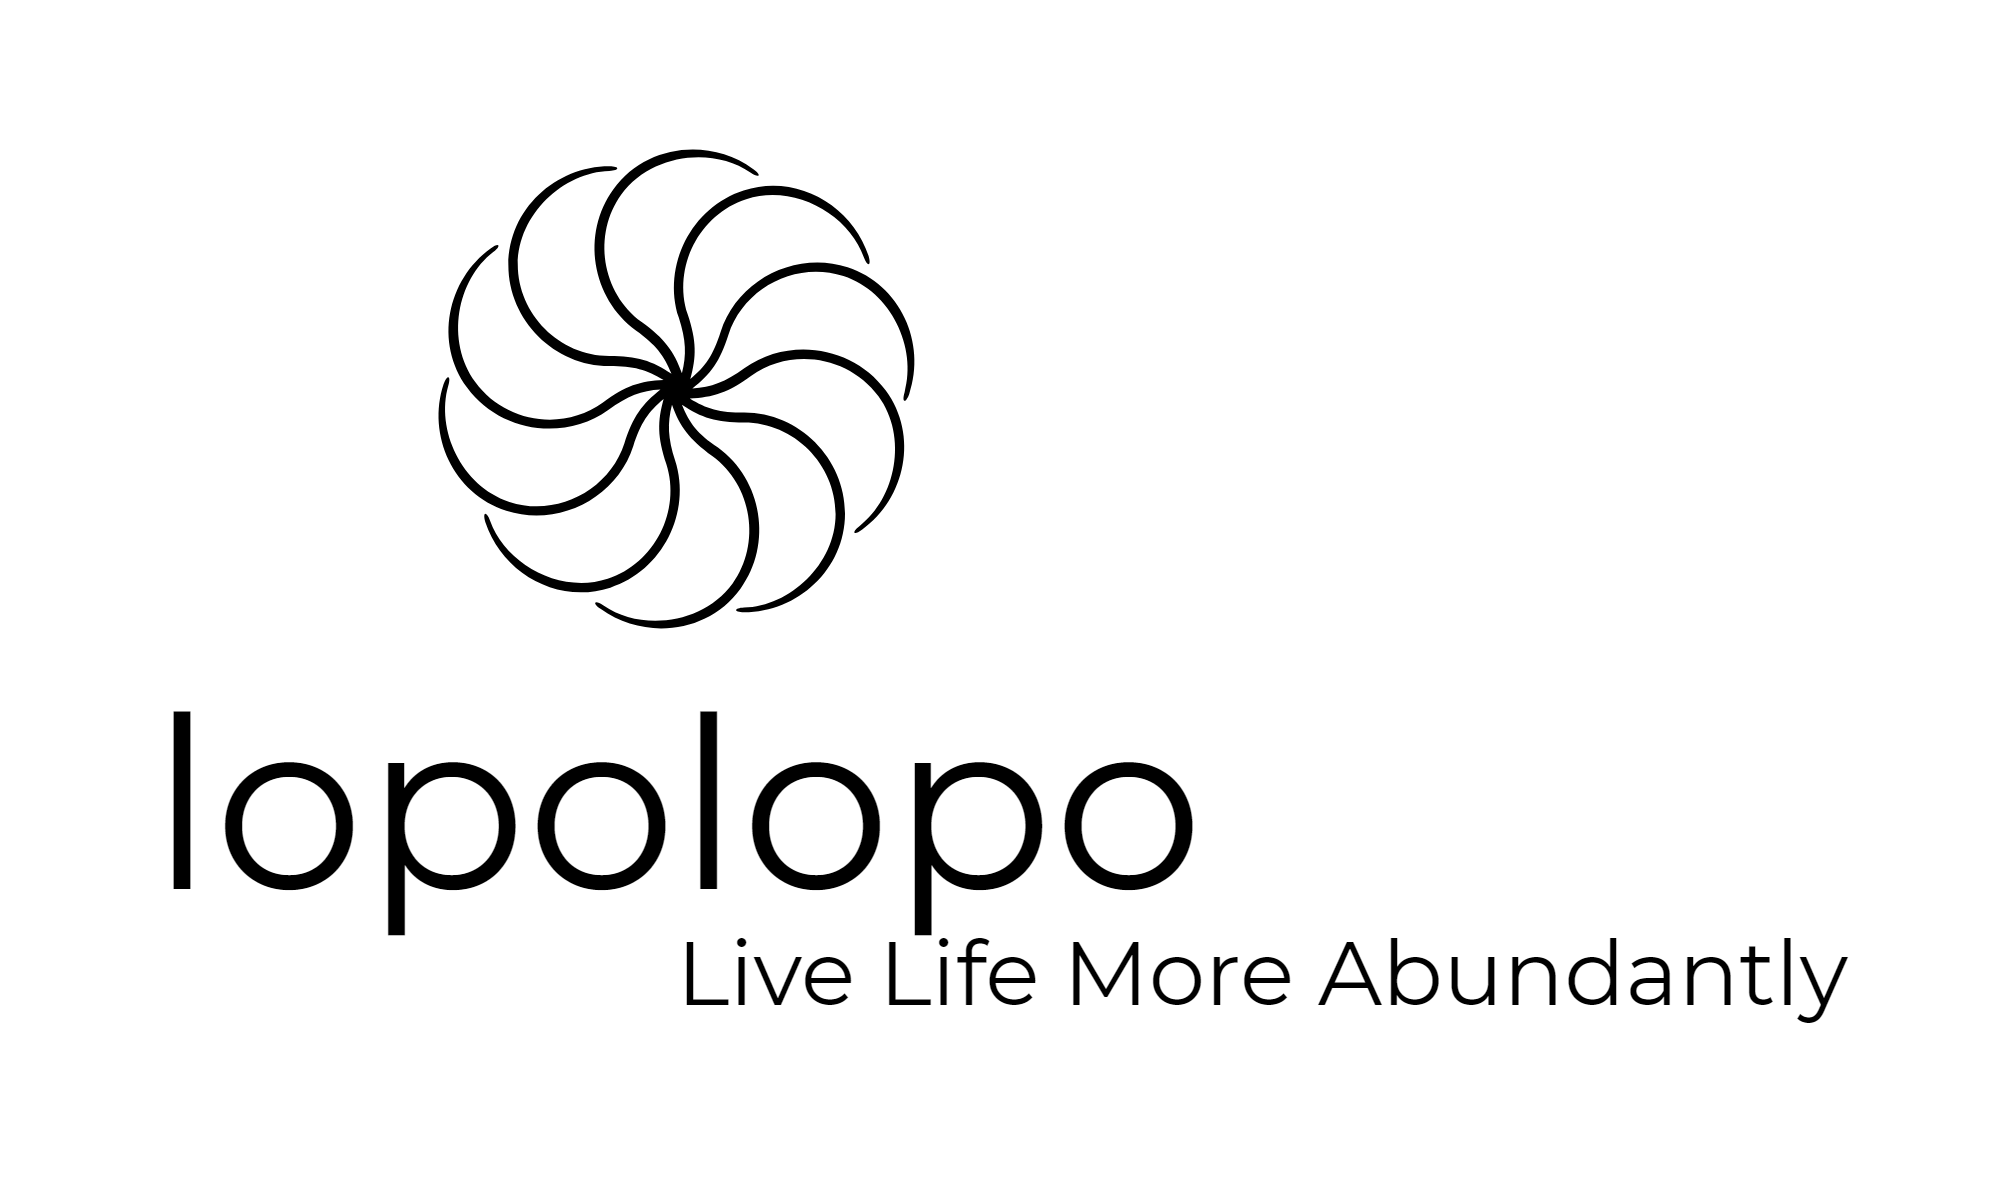 lopolopo-logo.png